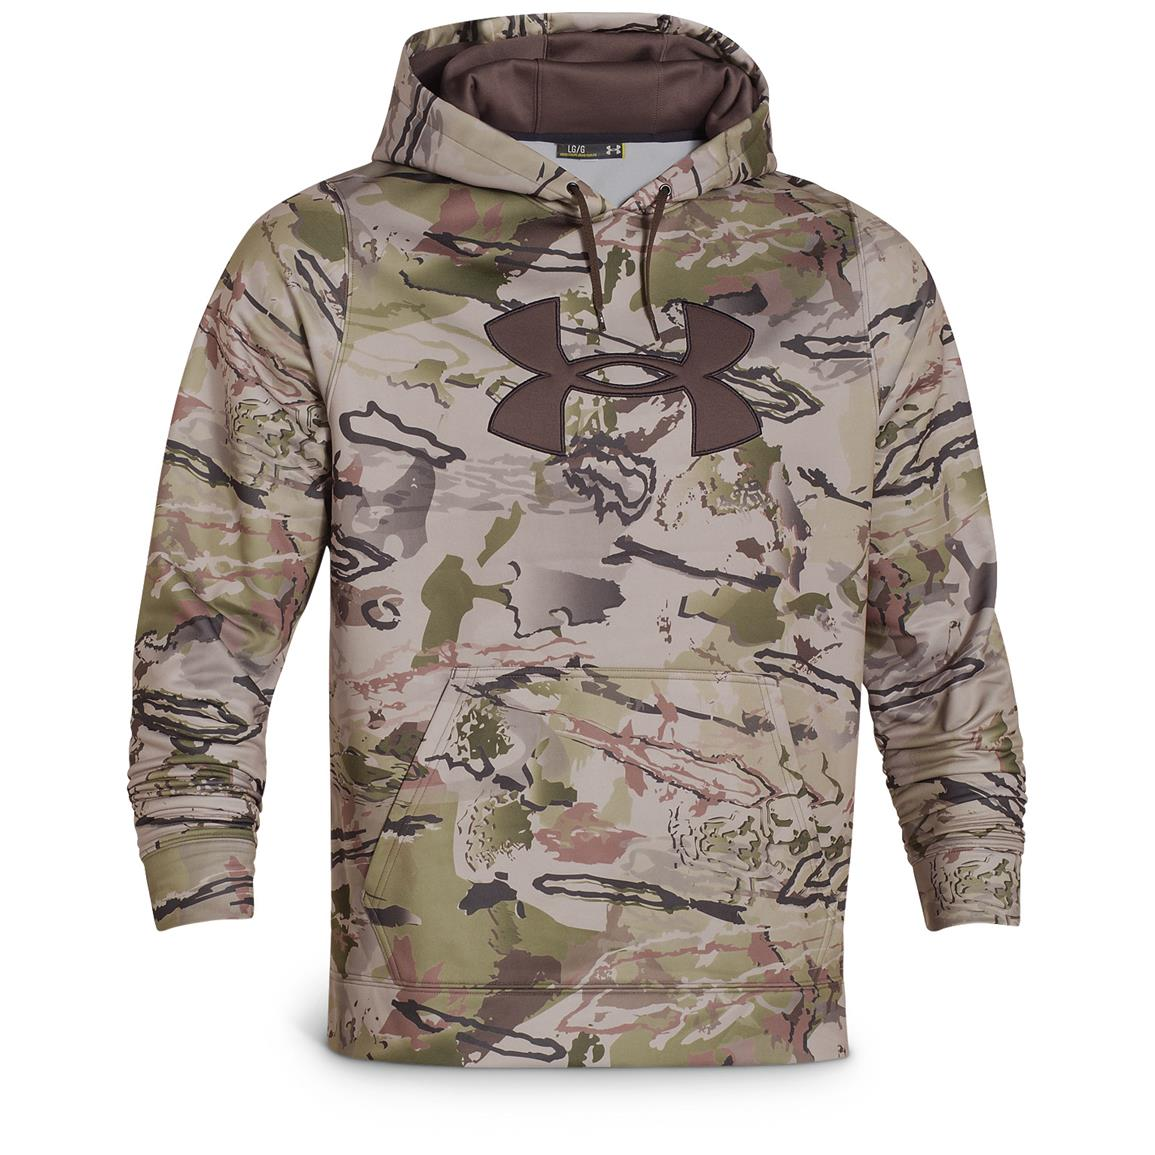 Under Armour Men's Camo Big Logo Fleece Hoodie, Ridge Reaper Camo